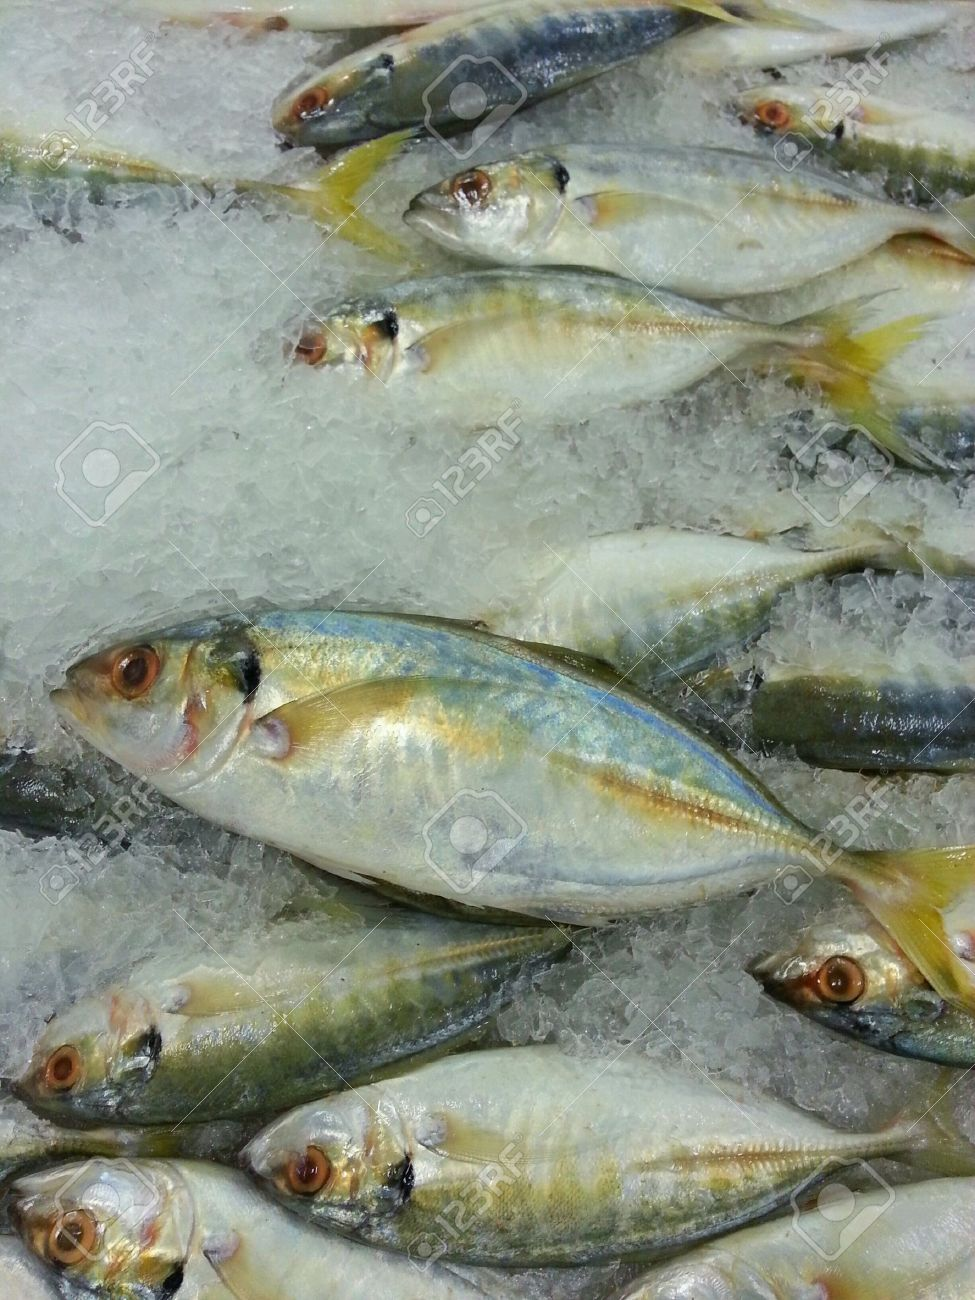 Yellowtail Scad Ikan Selar Kuning Being Sold In A Market Stock Photo Picture And Royalty Free Image Image 24001453